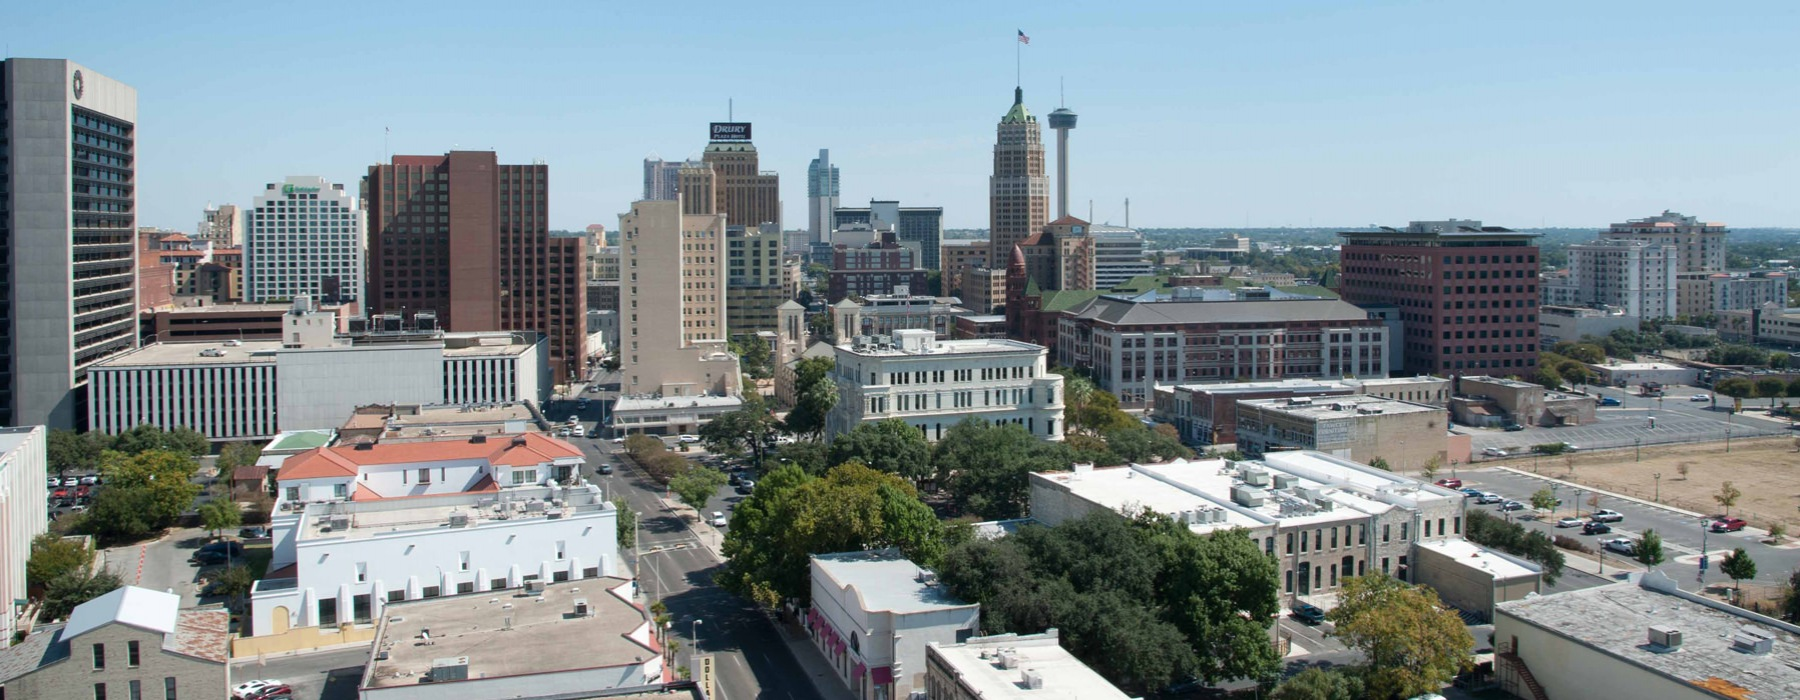 roof top view of downtown San Antonio